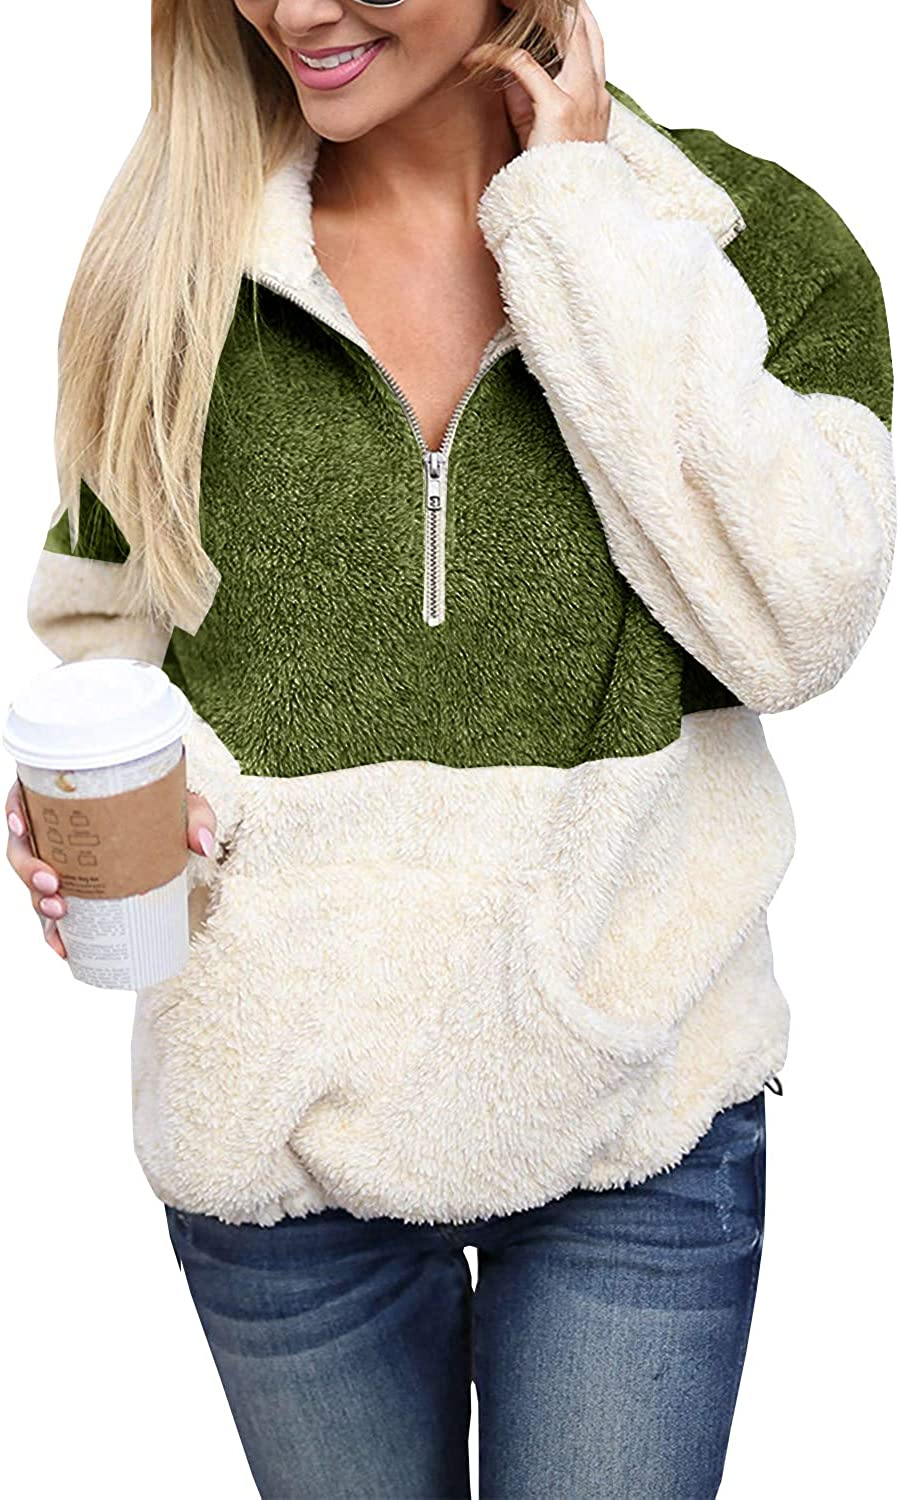 Womens Plus Size Sherpa Pullover Sweatshirts Zip Up Fuzzy Fleece Color Block Tops with Pockets